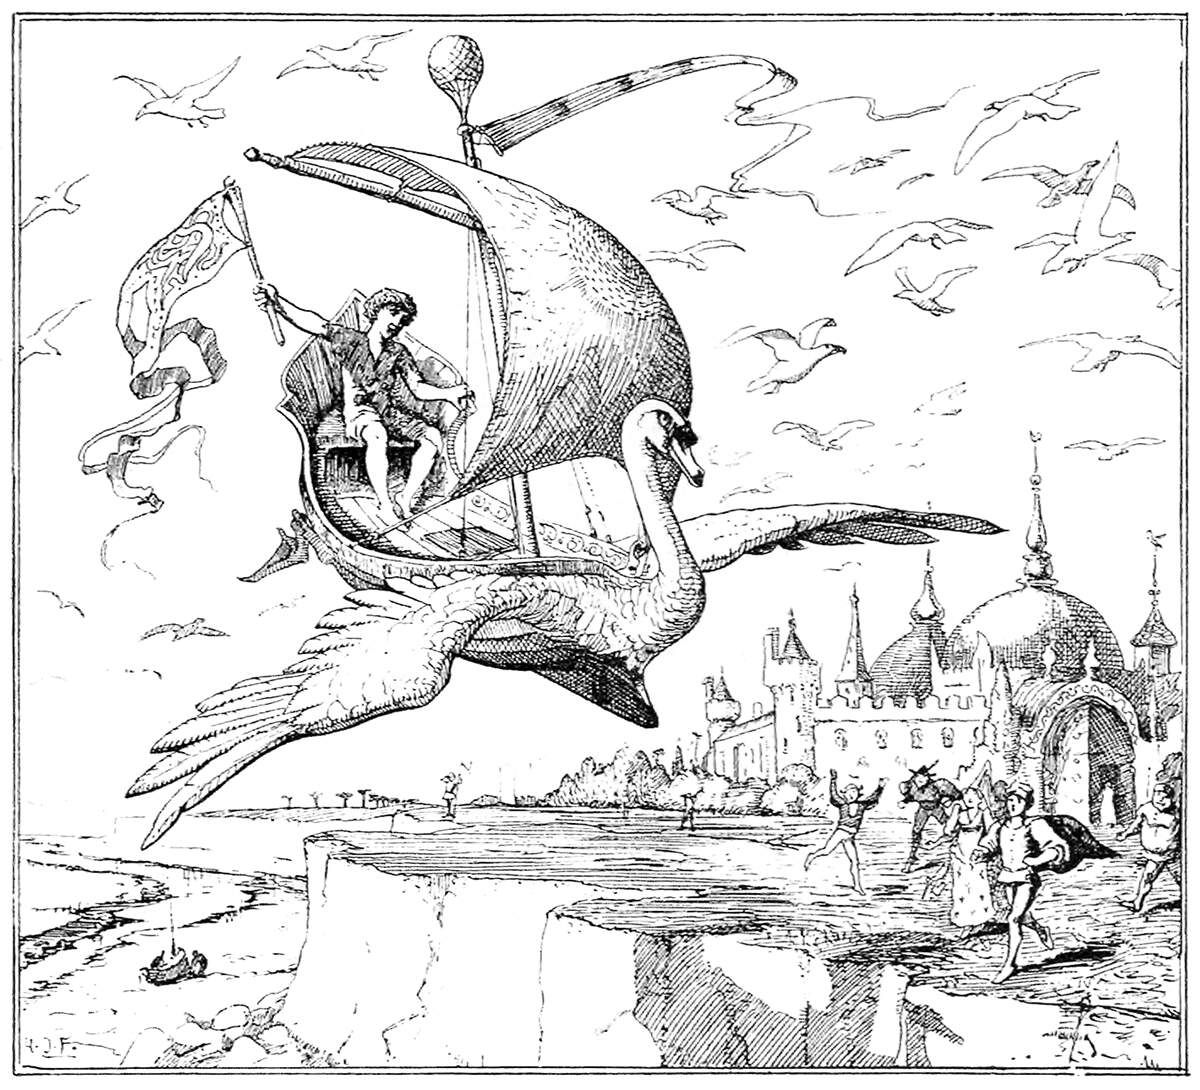 Public Domain Illustrations From Old Books Fairytale Illustration Illustration Engraving Illustration